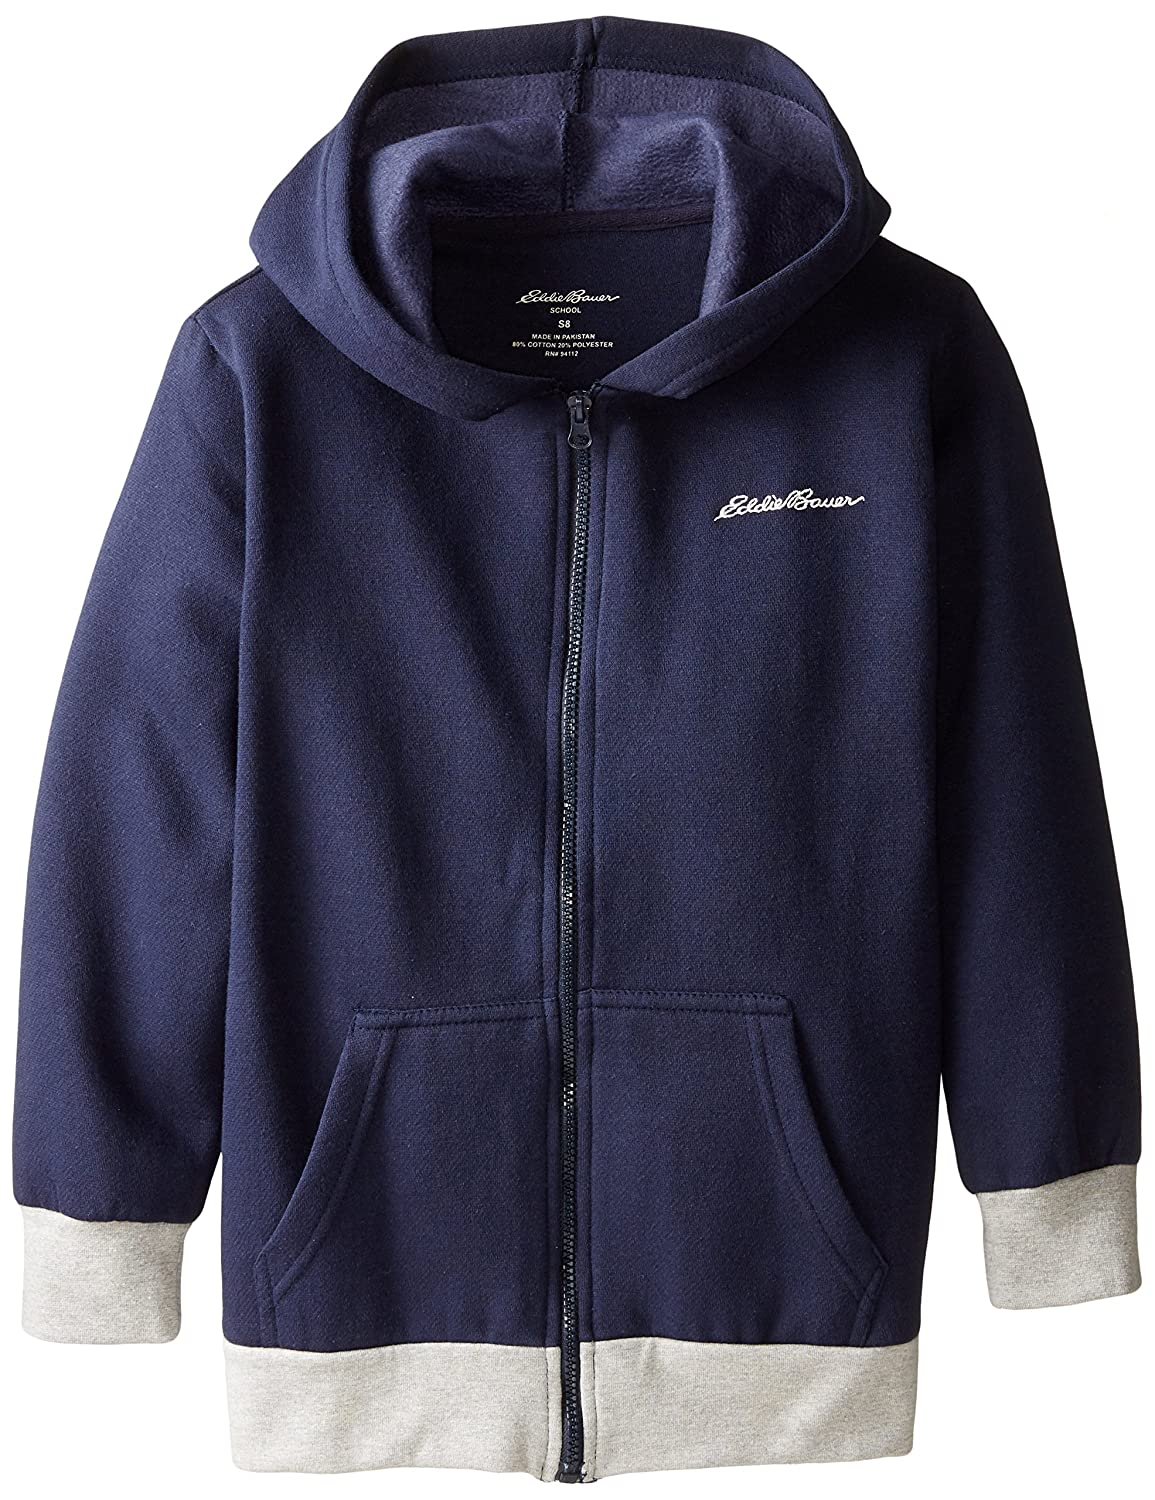 Eddie Bauer Boys' Fleece Hoodie (More Styles Available), Navy White Hem, 14/16 Eddie Bauer Uniforms Boys 8-20 F7UY26NAEB